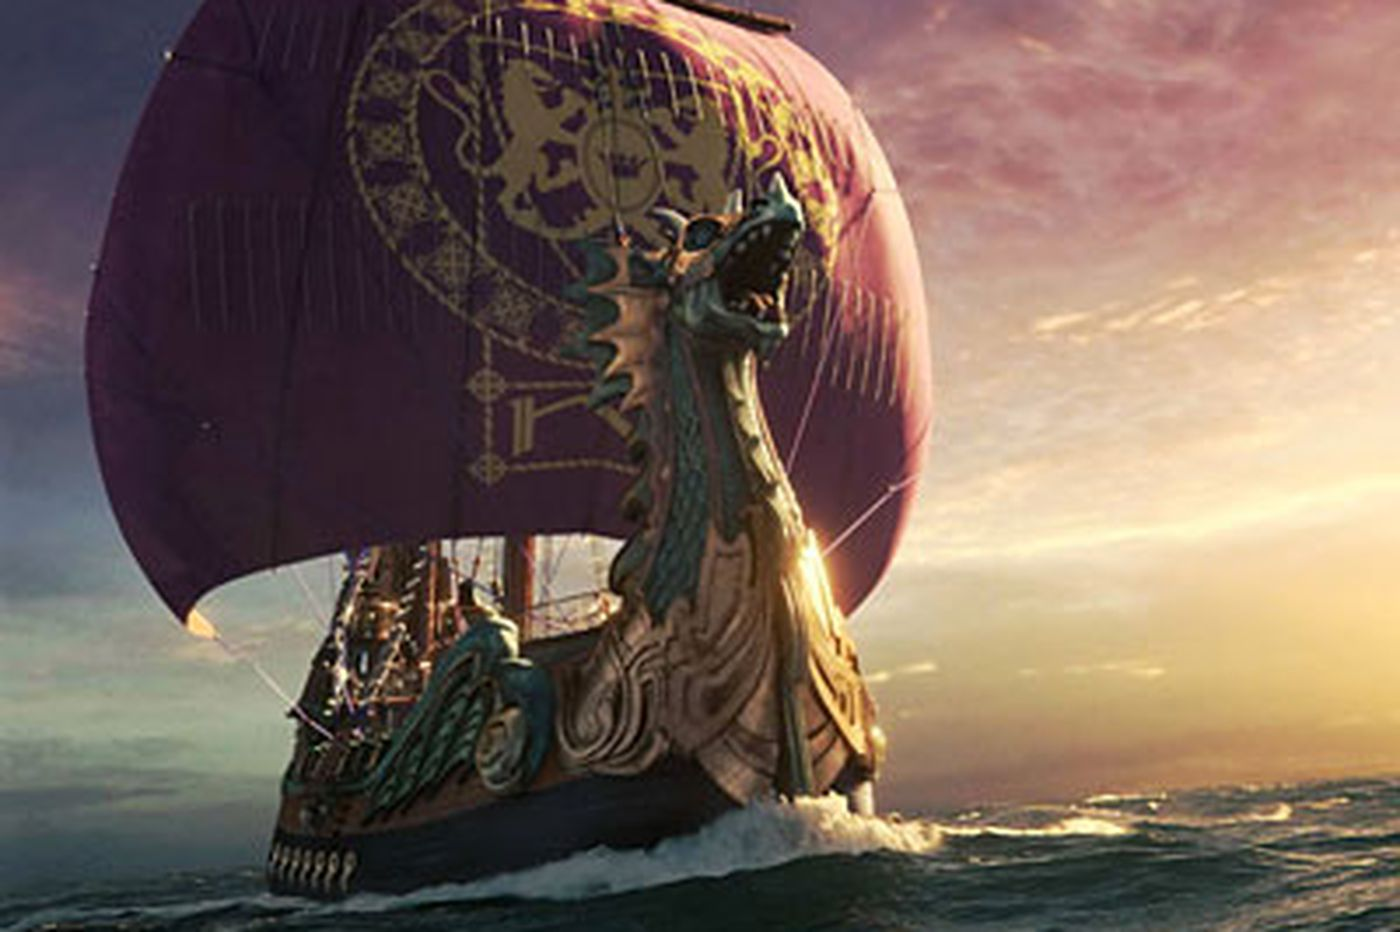 'The Chronicles of Narnia, Voyage of the Dawn Treader' is a low achiever